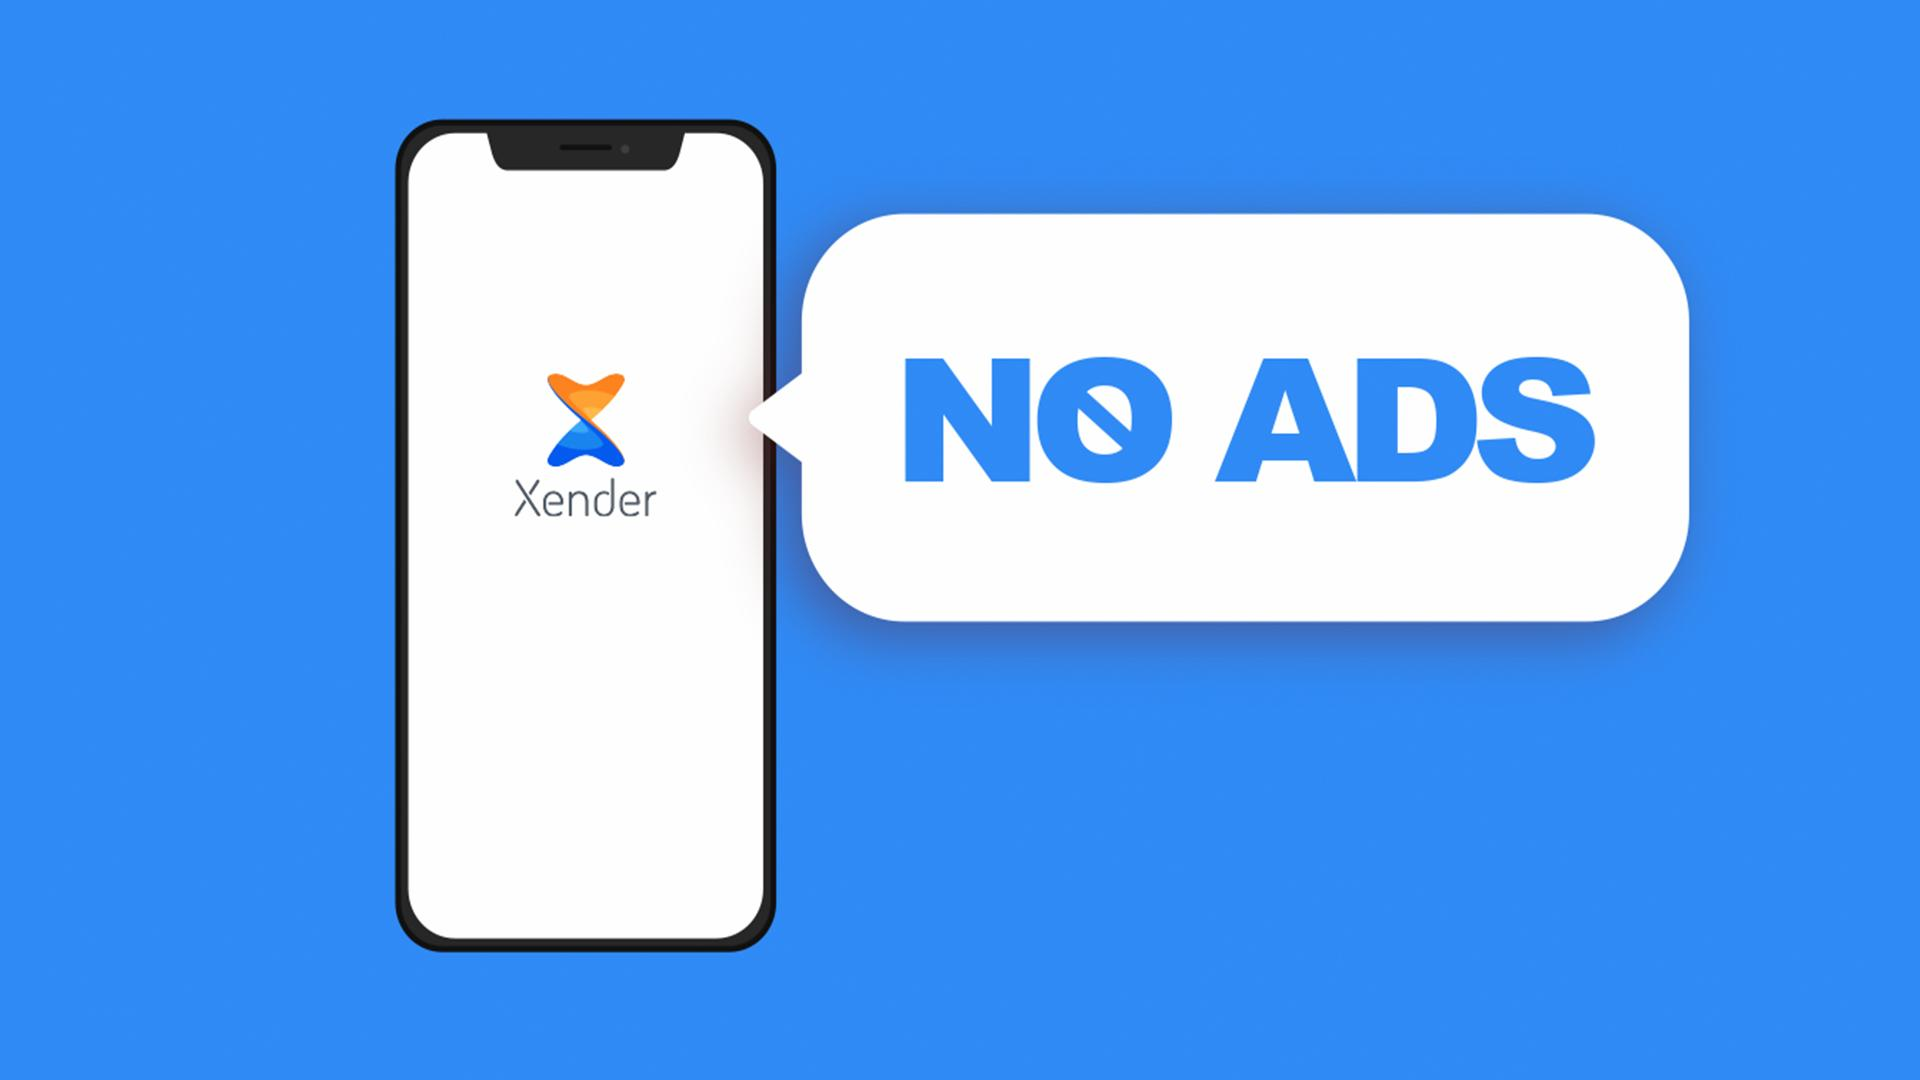 Share Movies & Transfer Files - Xender for Android - APK Download